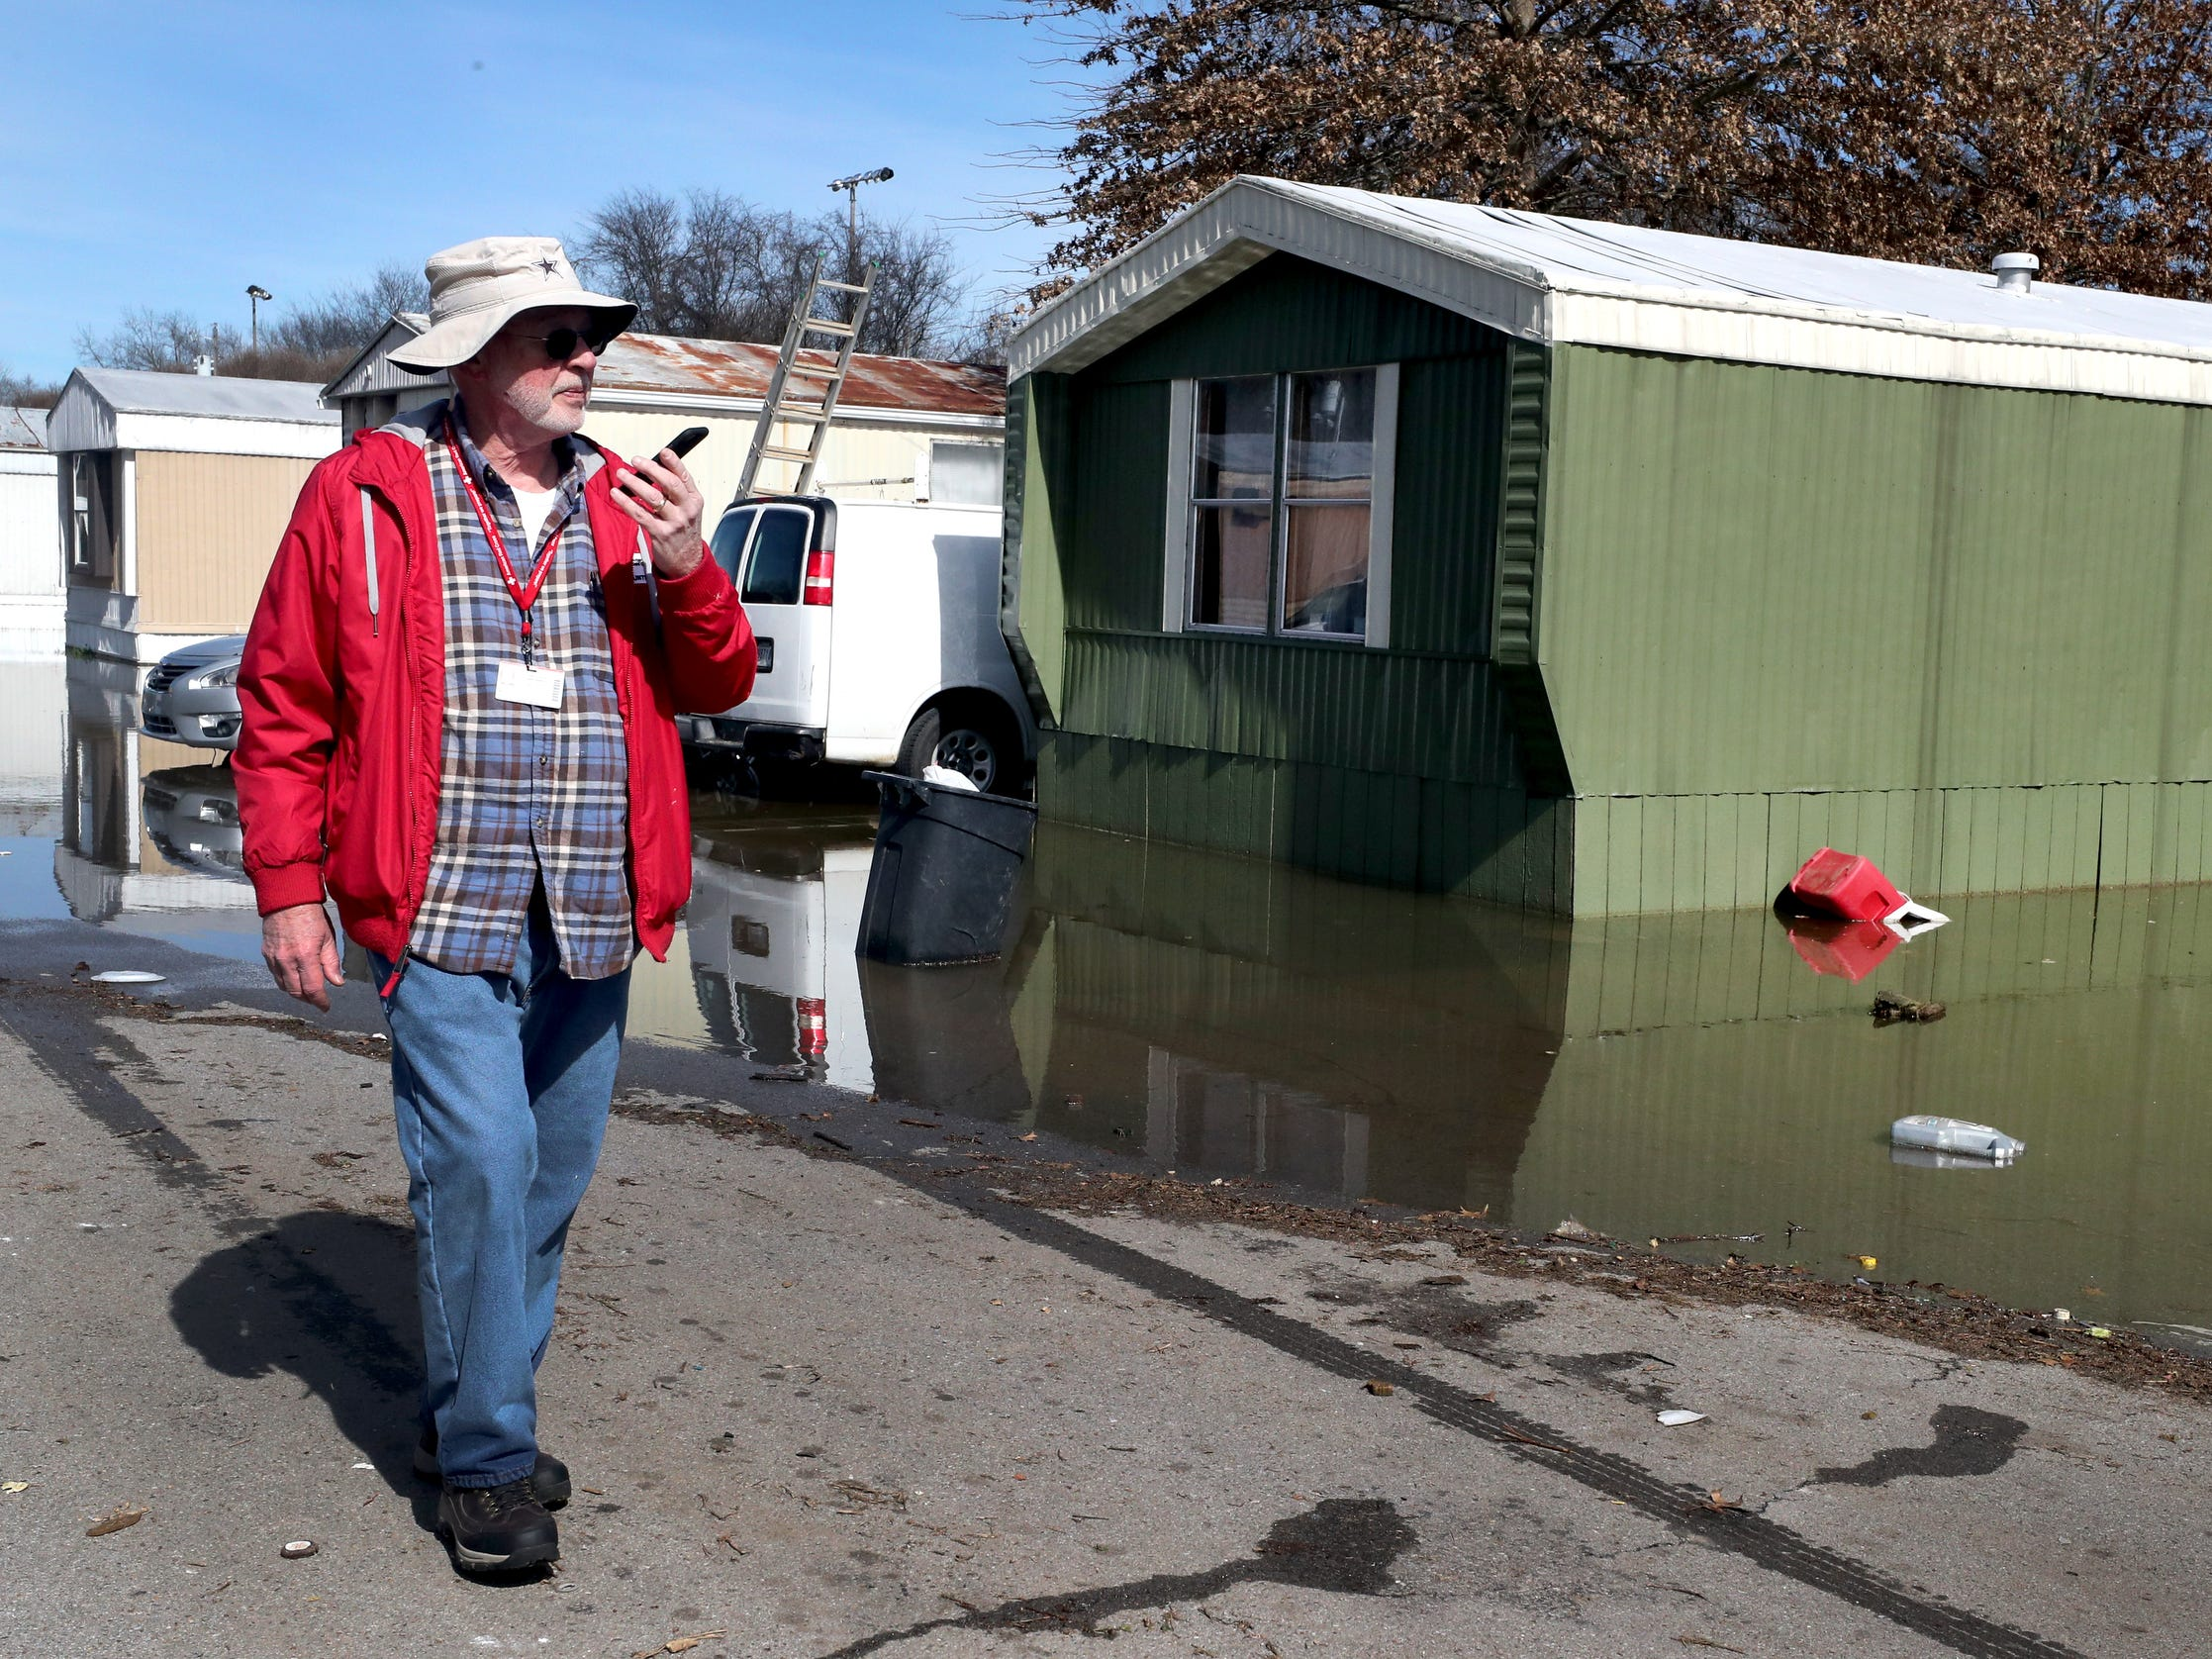 Red Cross Volunteer James Hopkins, with the Disaster Action Team records and documents damage to mobile homes in the the Maple Manor Community Mobile Home Park, in Smyrna, Tenn., on Monday, Feb. 25, 2019.